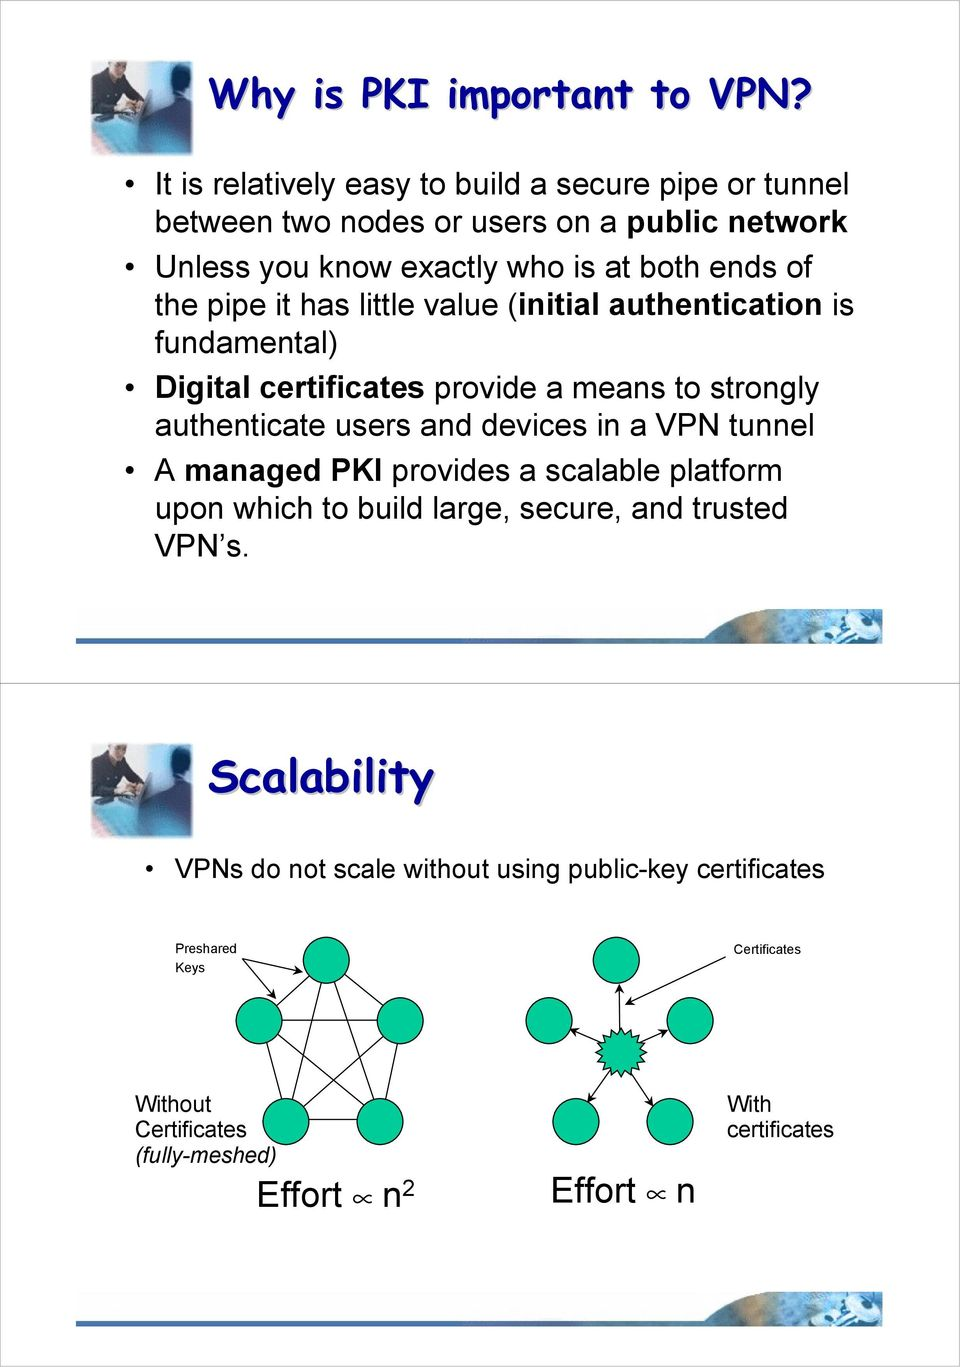 pipe it has little value (initial authentication is fundamental) Digital certificates provide a means to strongly authenticate users and devices in a